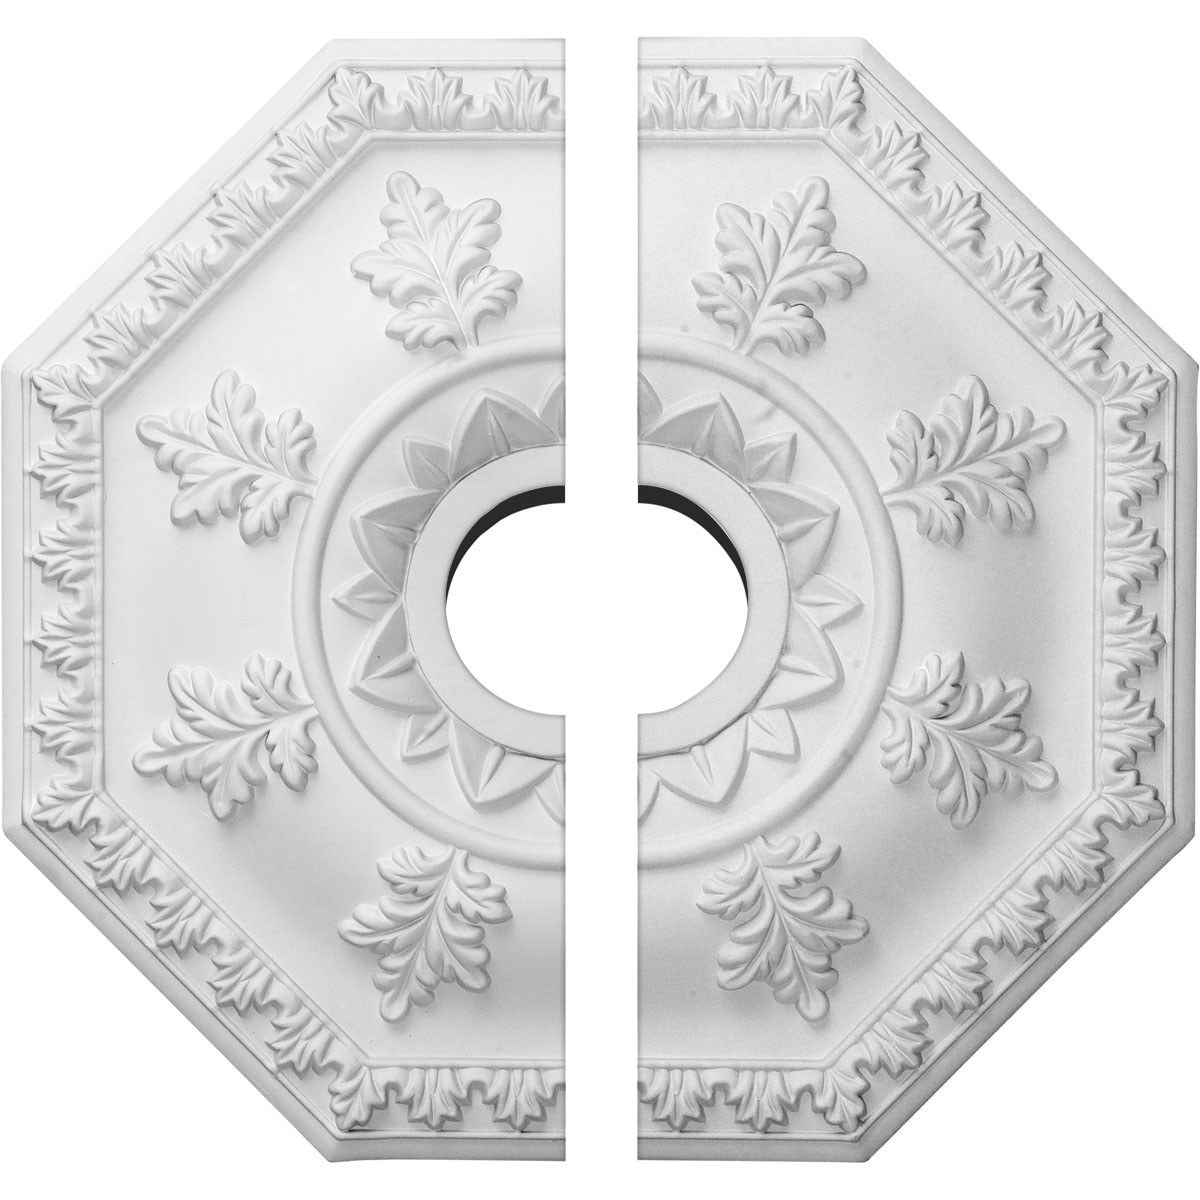 """EM-CM18NT2 - 18""""OD x 3 1/2""""ID x 1 1/2""""P Nottingham Ceiling Medallion, Two Piece (Fits Canopies up to 4 5/8"""")"""